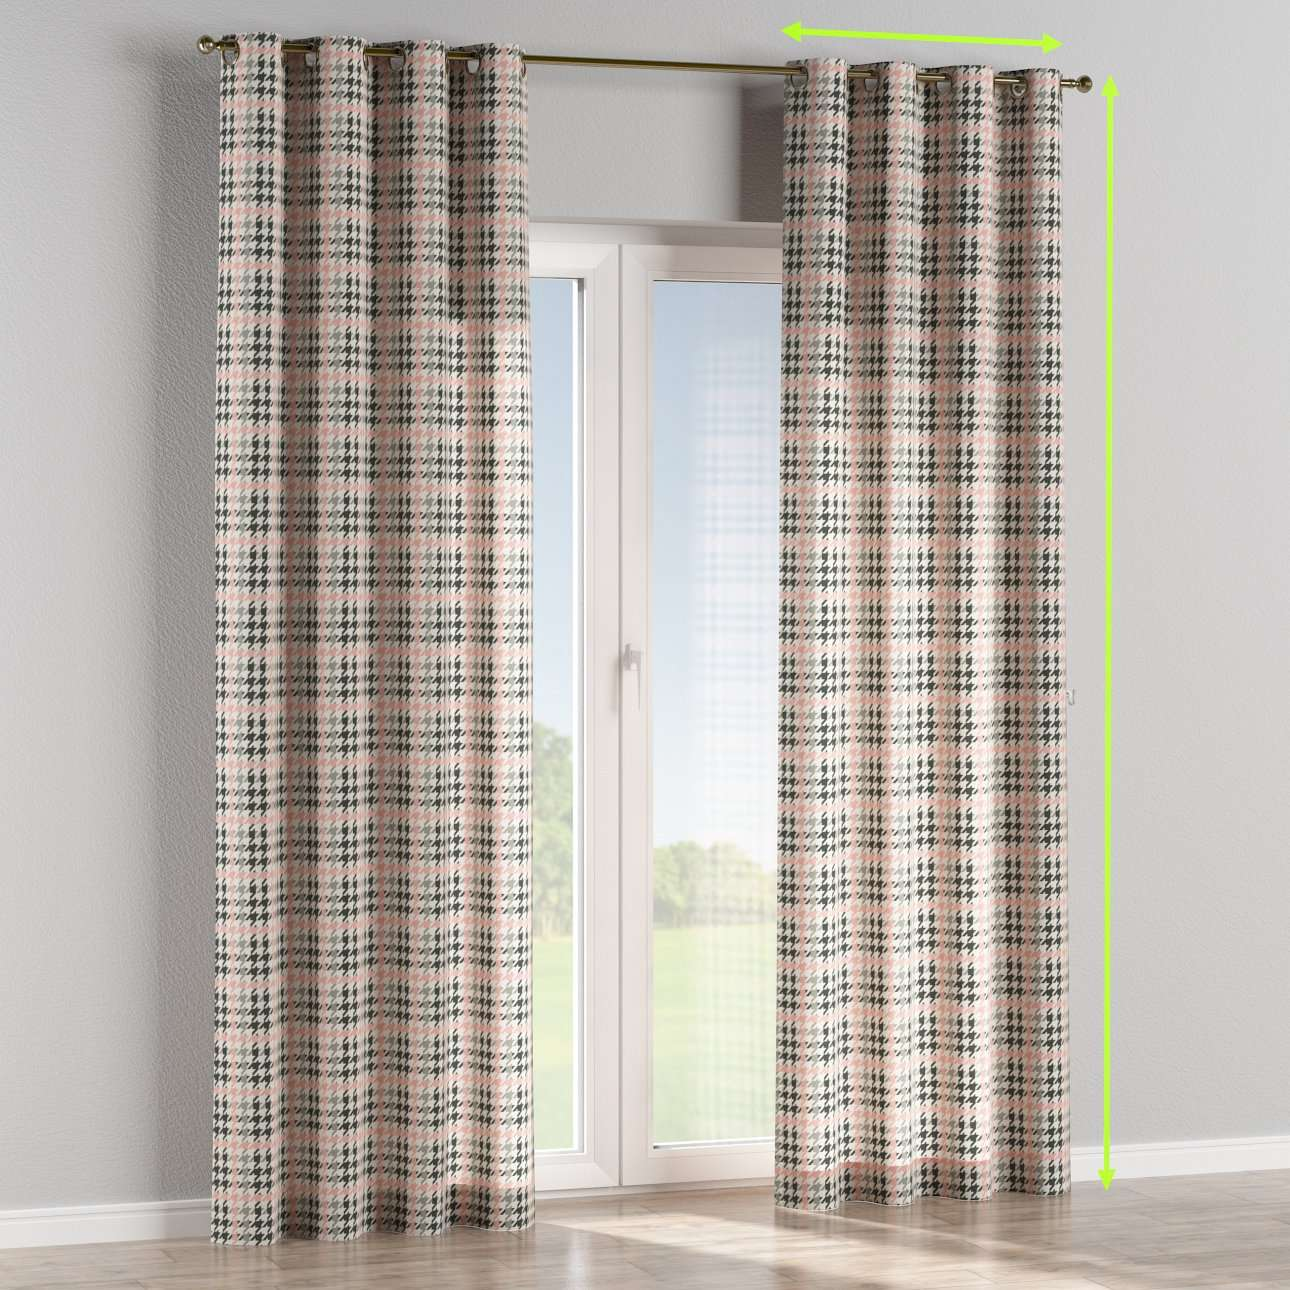 Eyelet lined curtains in collection Brooklyn, fabric: 137-75